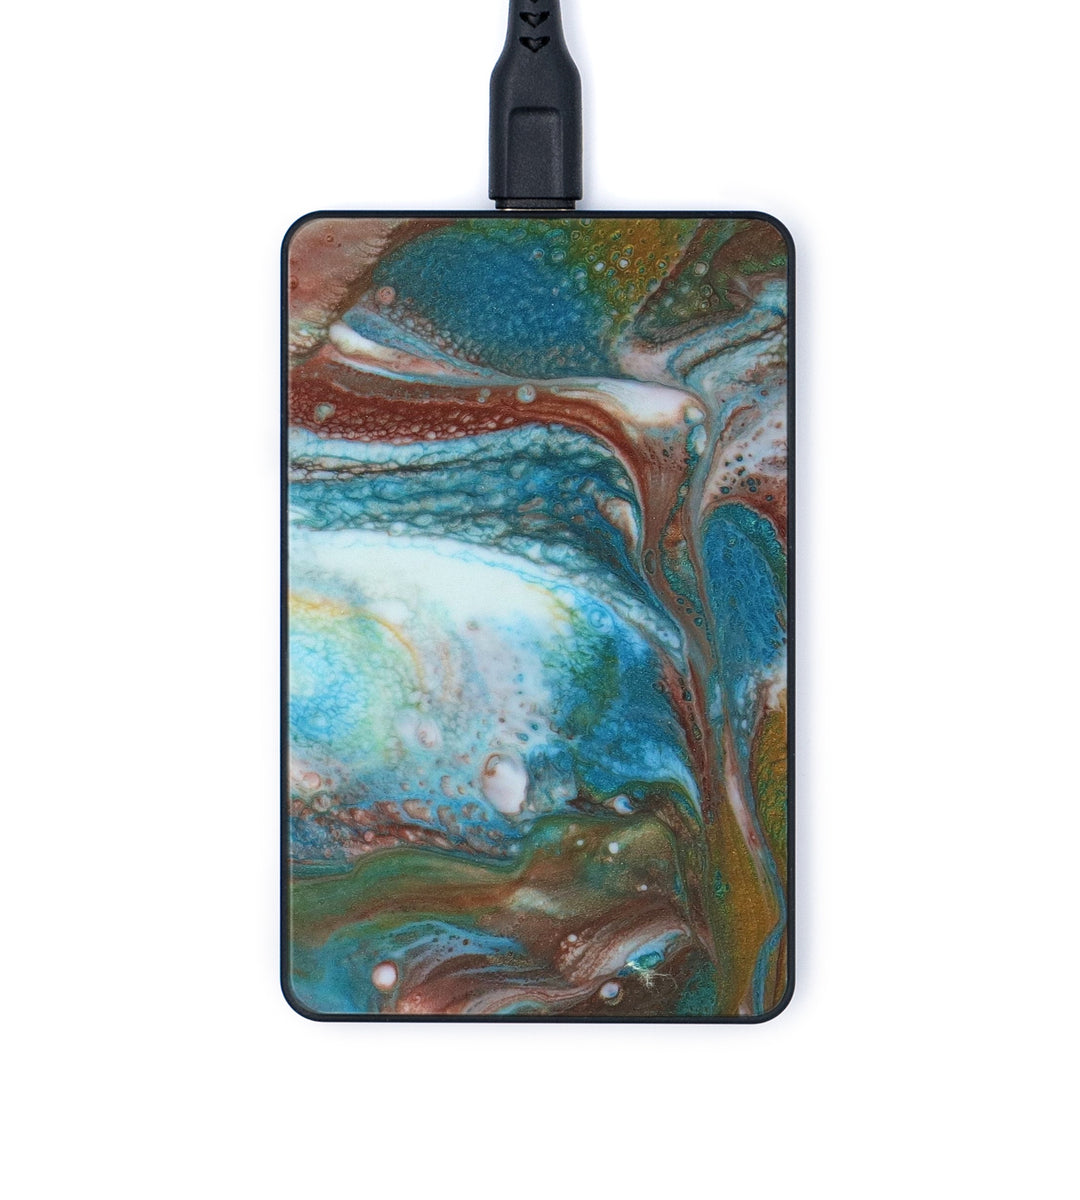 Thin ResinArt Wireless Charger - Femke (Teal & Gold, 347762)